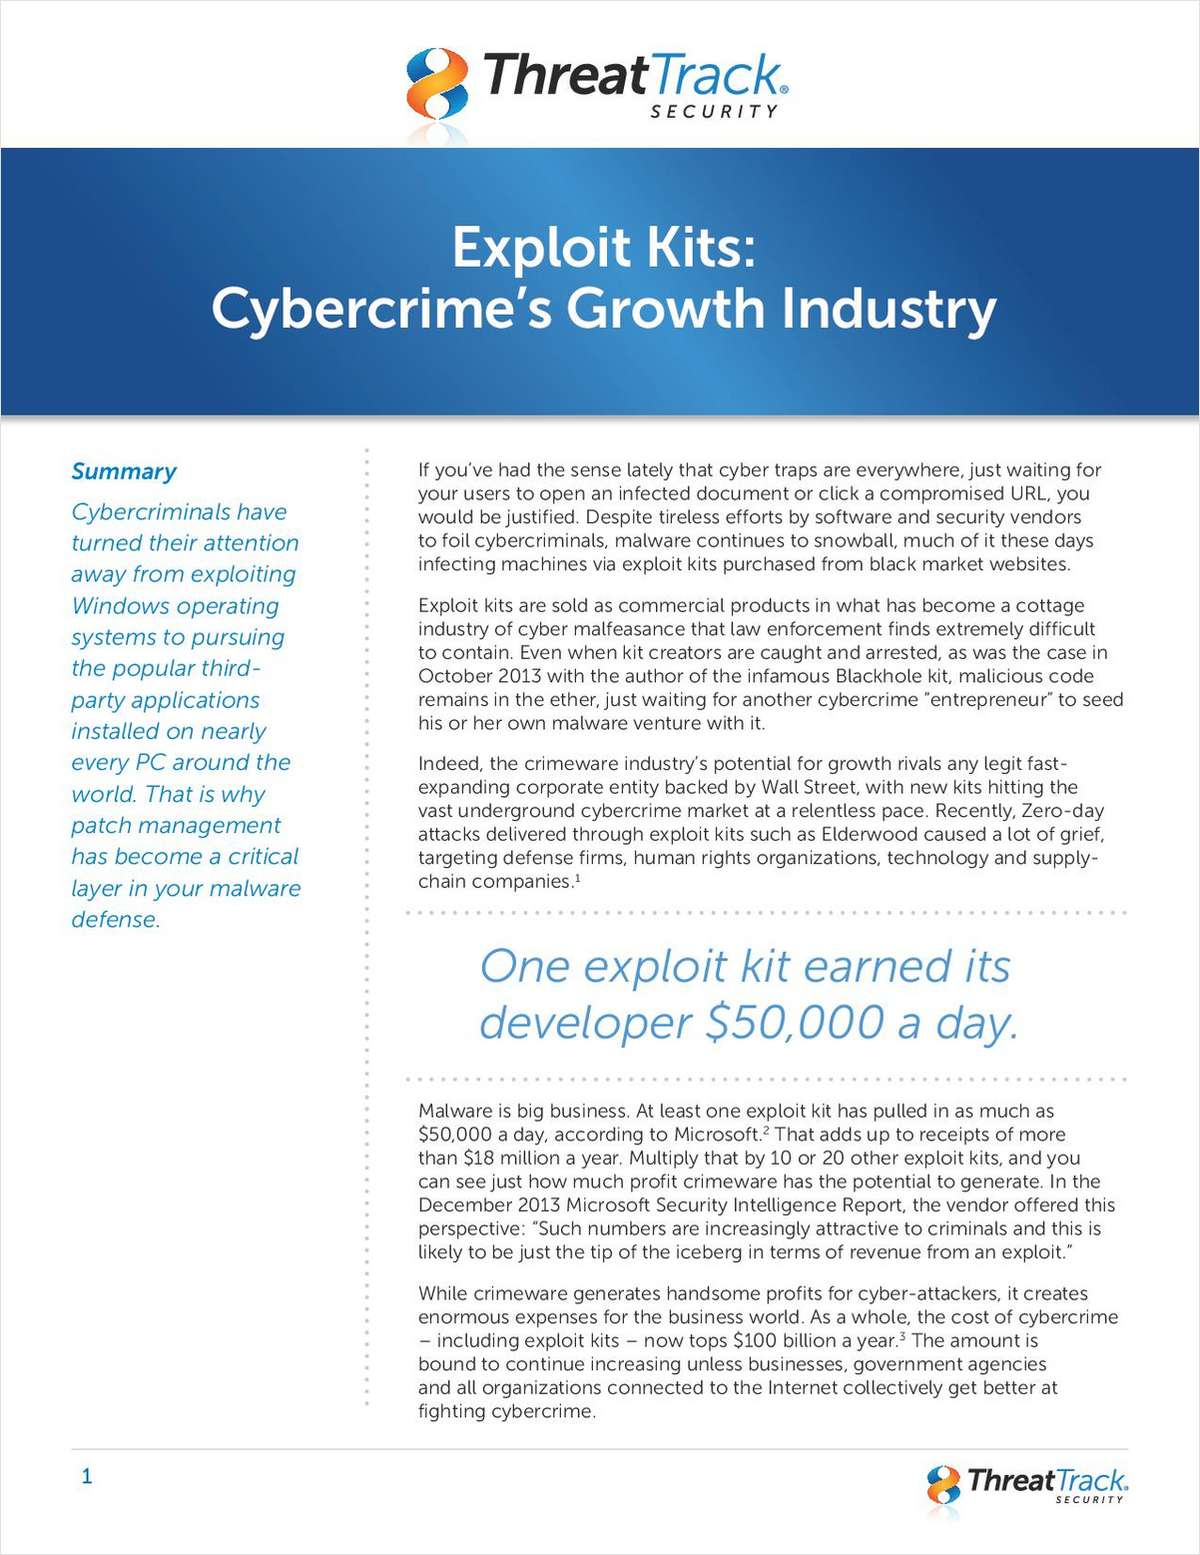 Exploit Kits: Cybercrime's Growth Industry